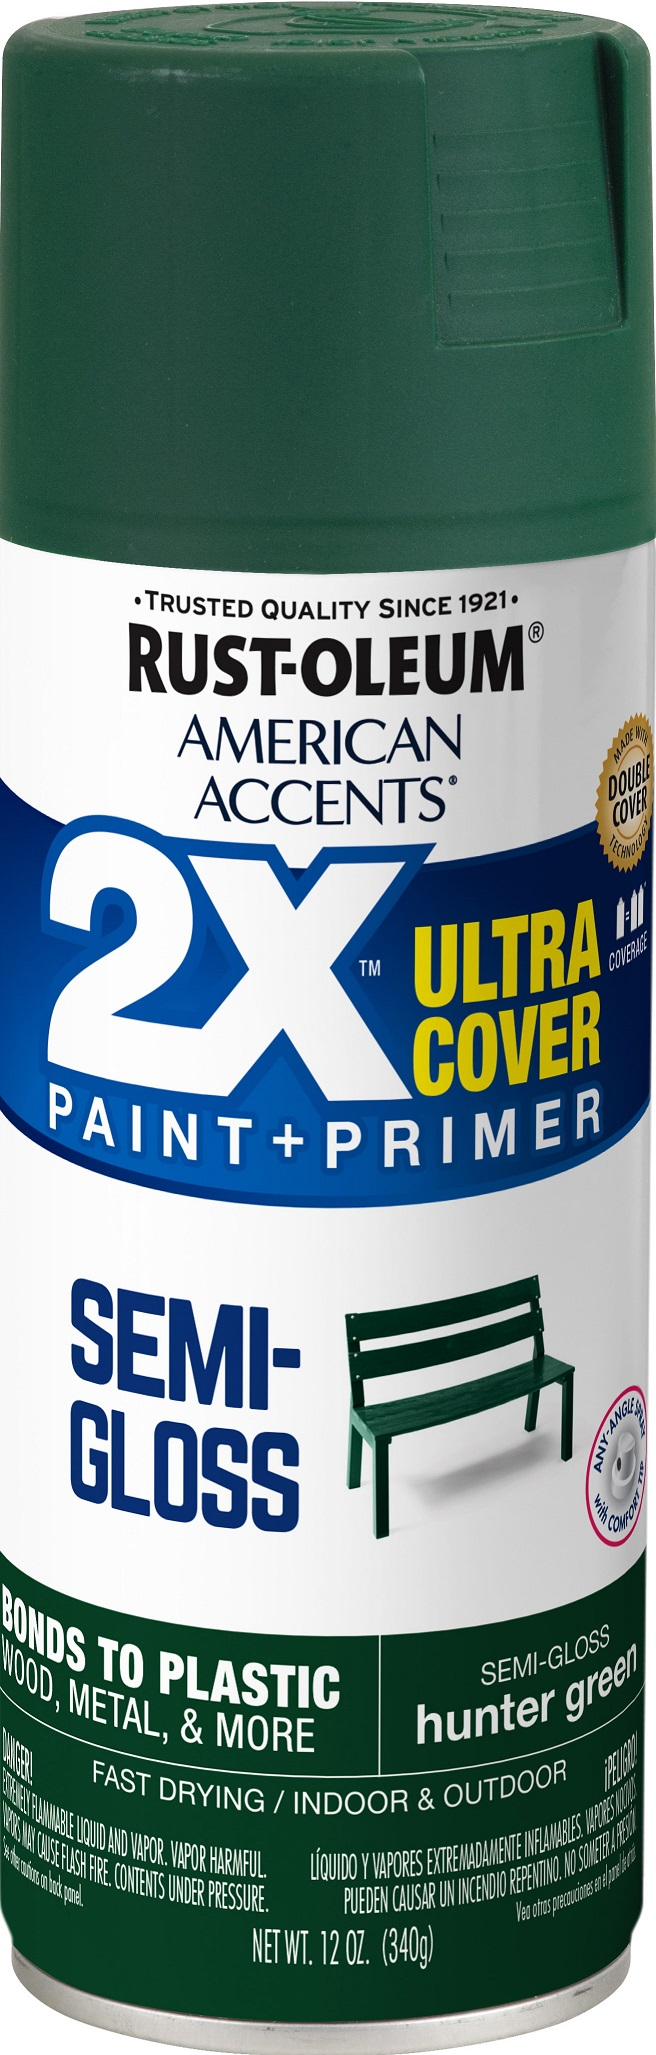 (3 Pack) Rust-Oleum American Accents Ultra Cover 2X Semi-Gloss Hunter Green Spray Paint and Primer in 1, 12 oz